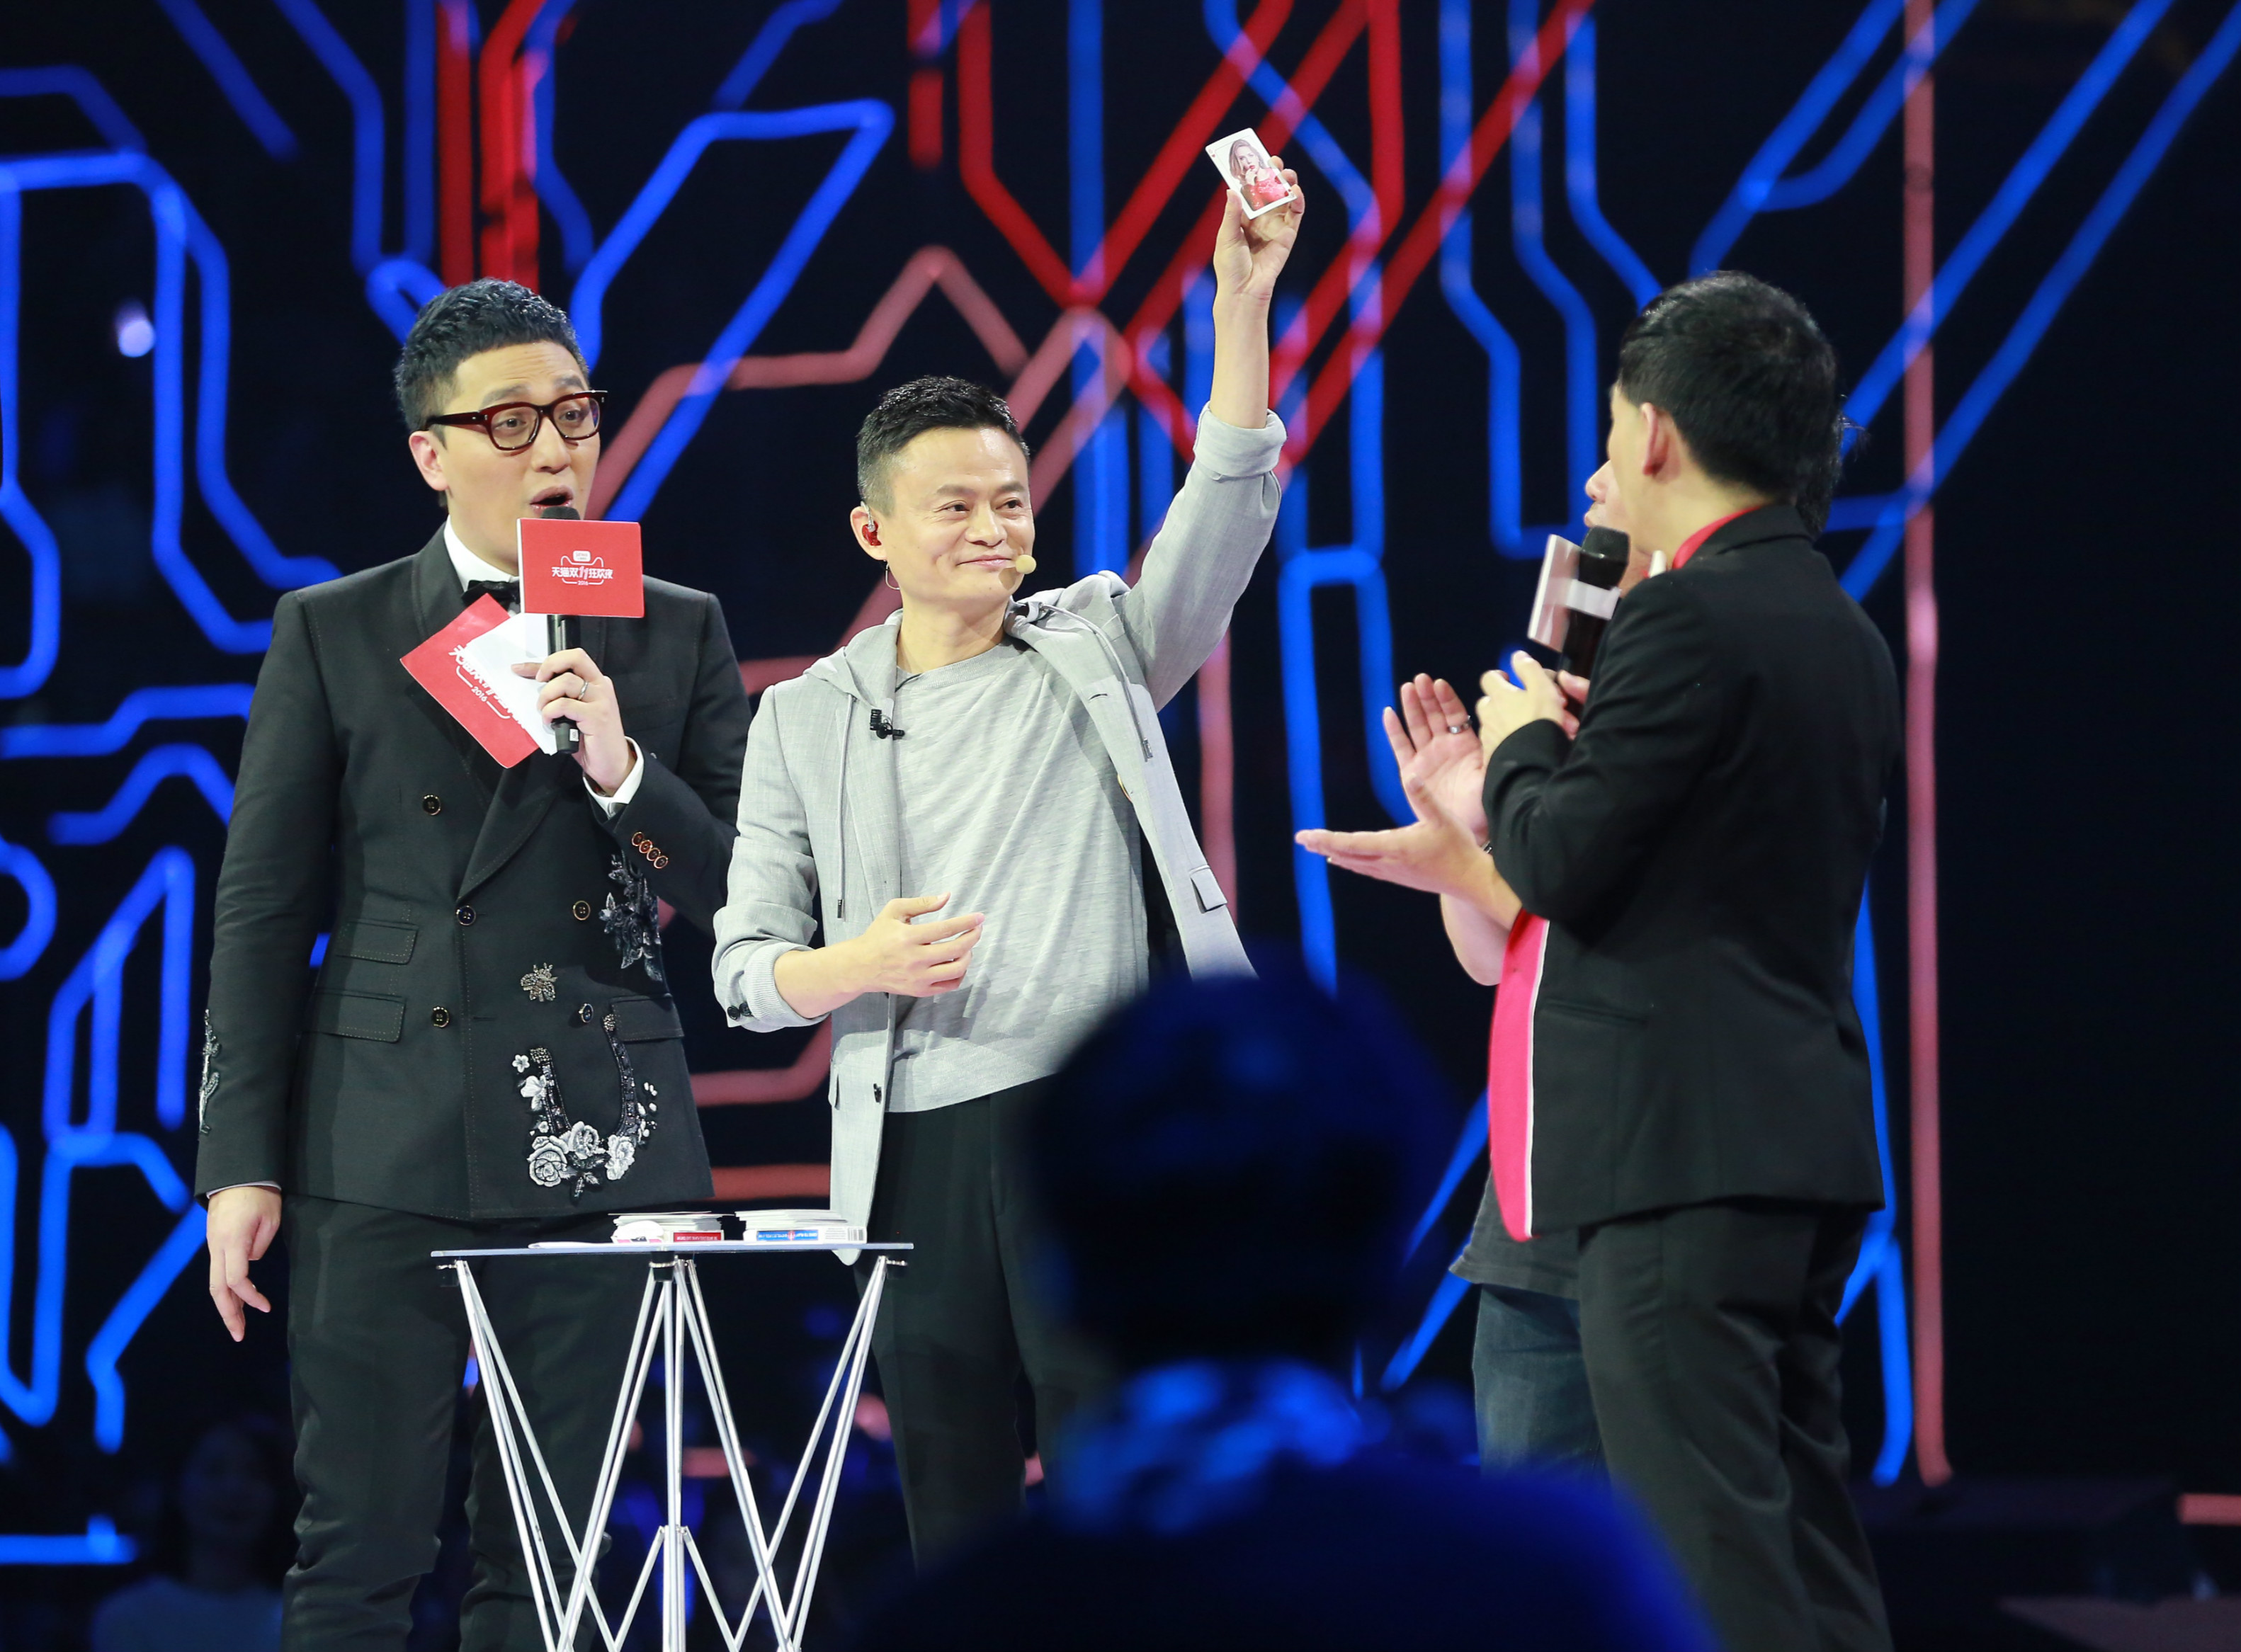 Alibaba founder Jack Ma takes part in a game during a gala on Nov. 10.